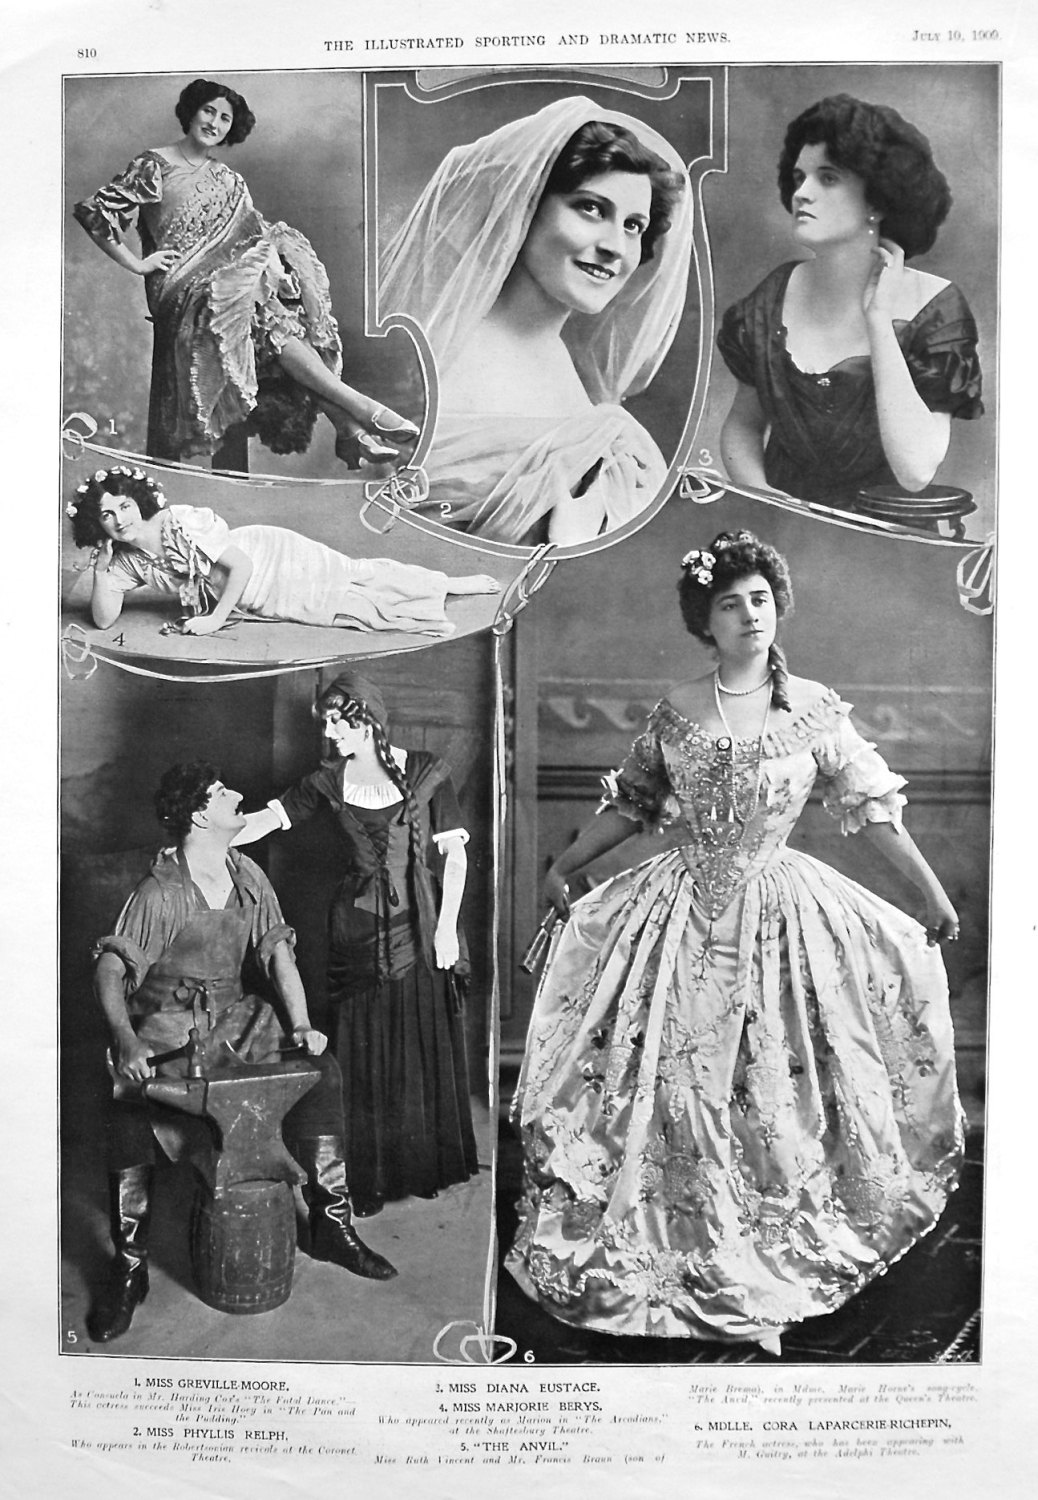 Actresses from the Stage 1909.